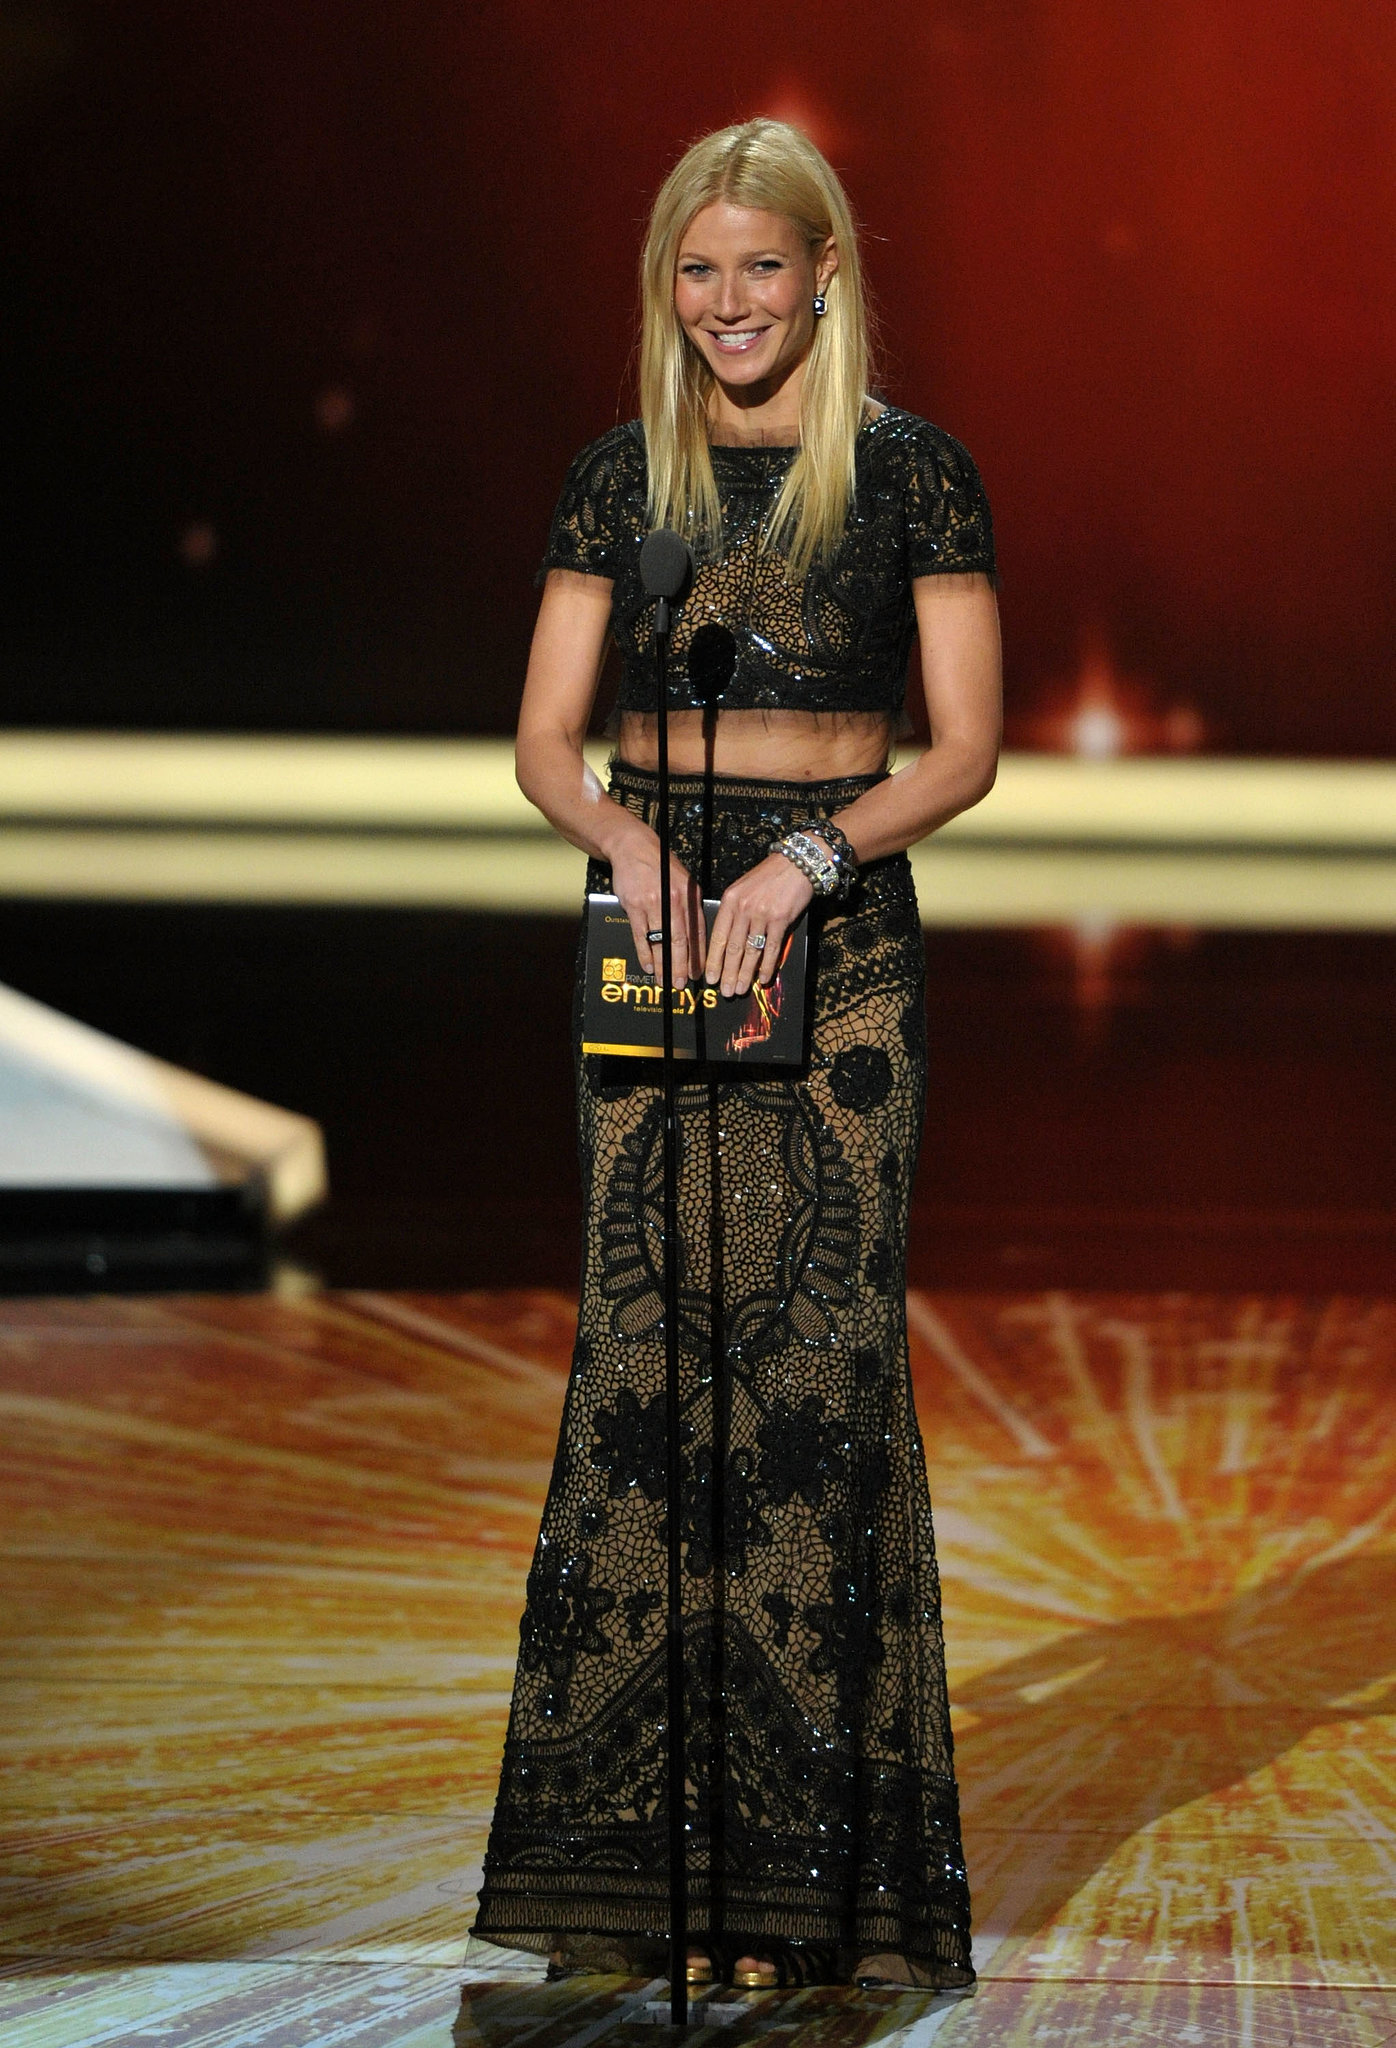 Gwyneth Paltrow presented an award in 2011.